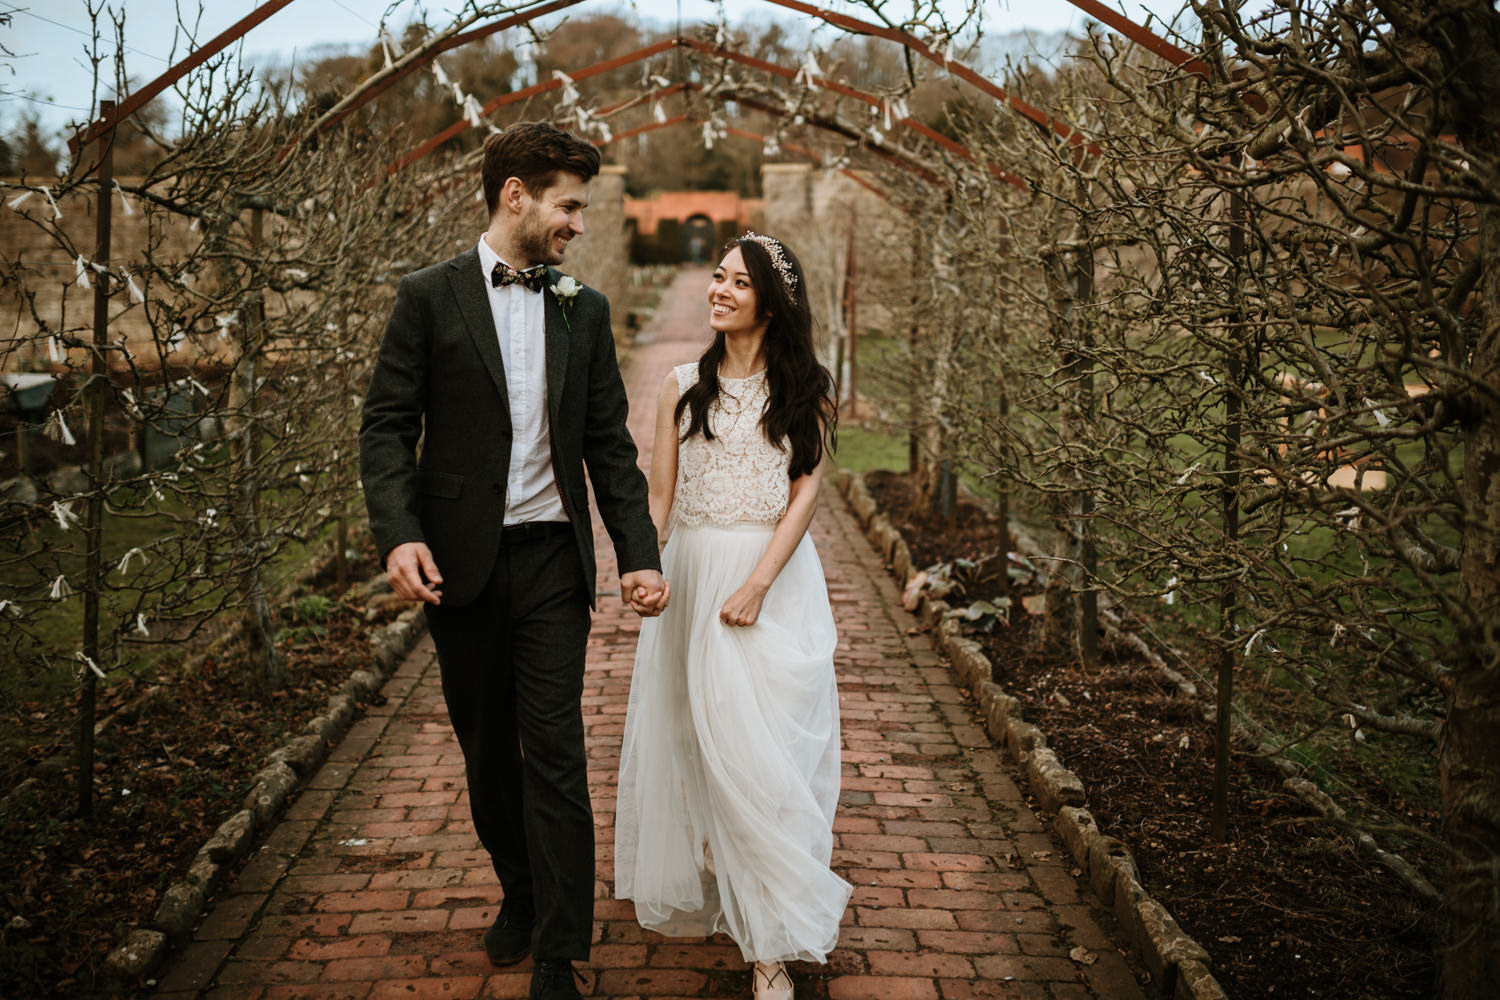 bride and groom walking and holding hands during their wedding portrait shoot